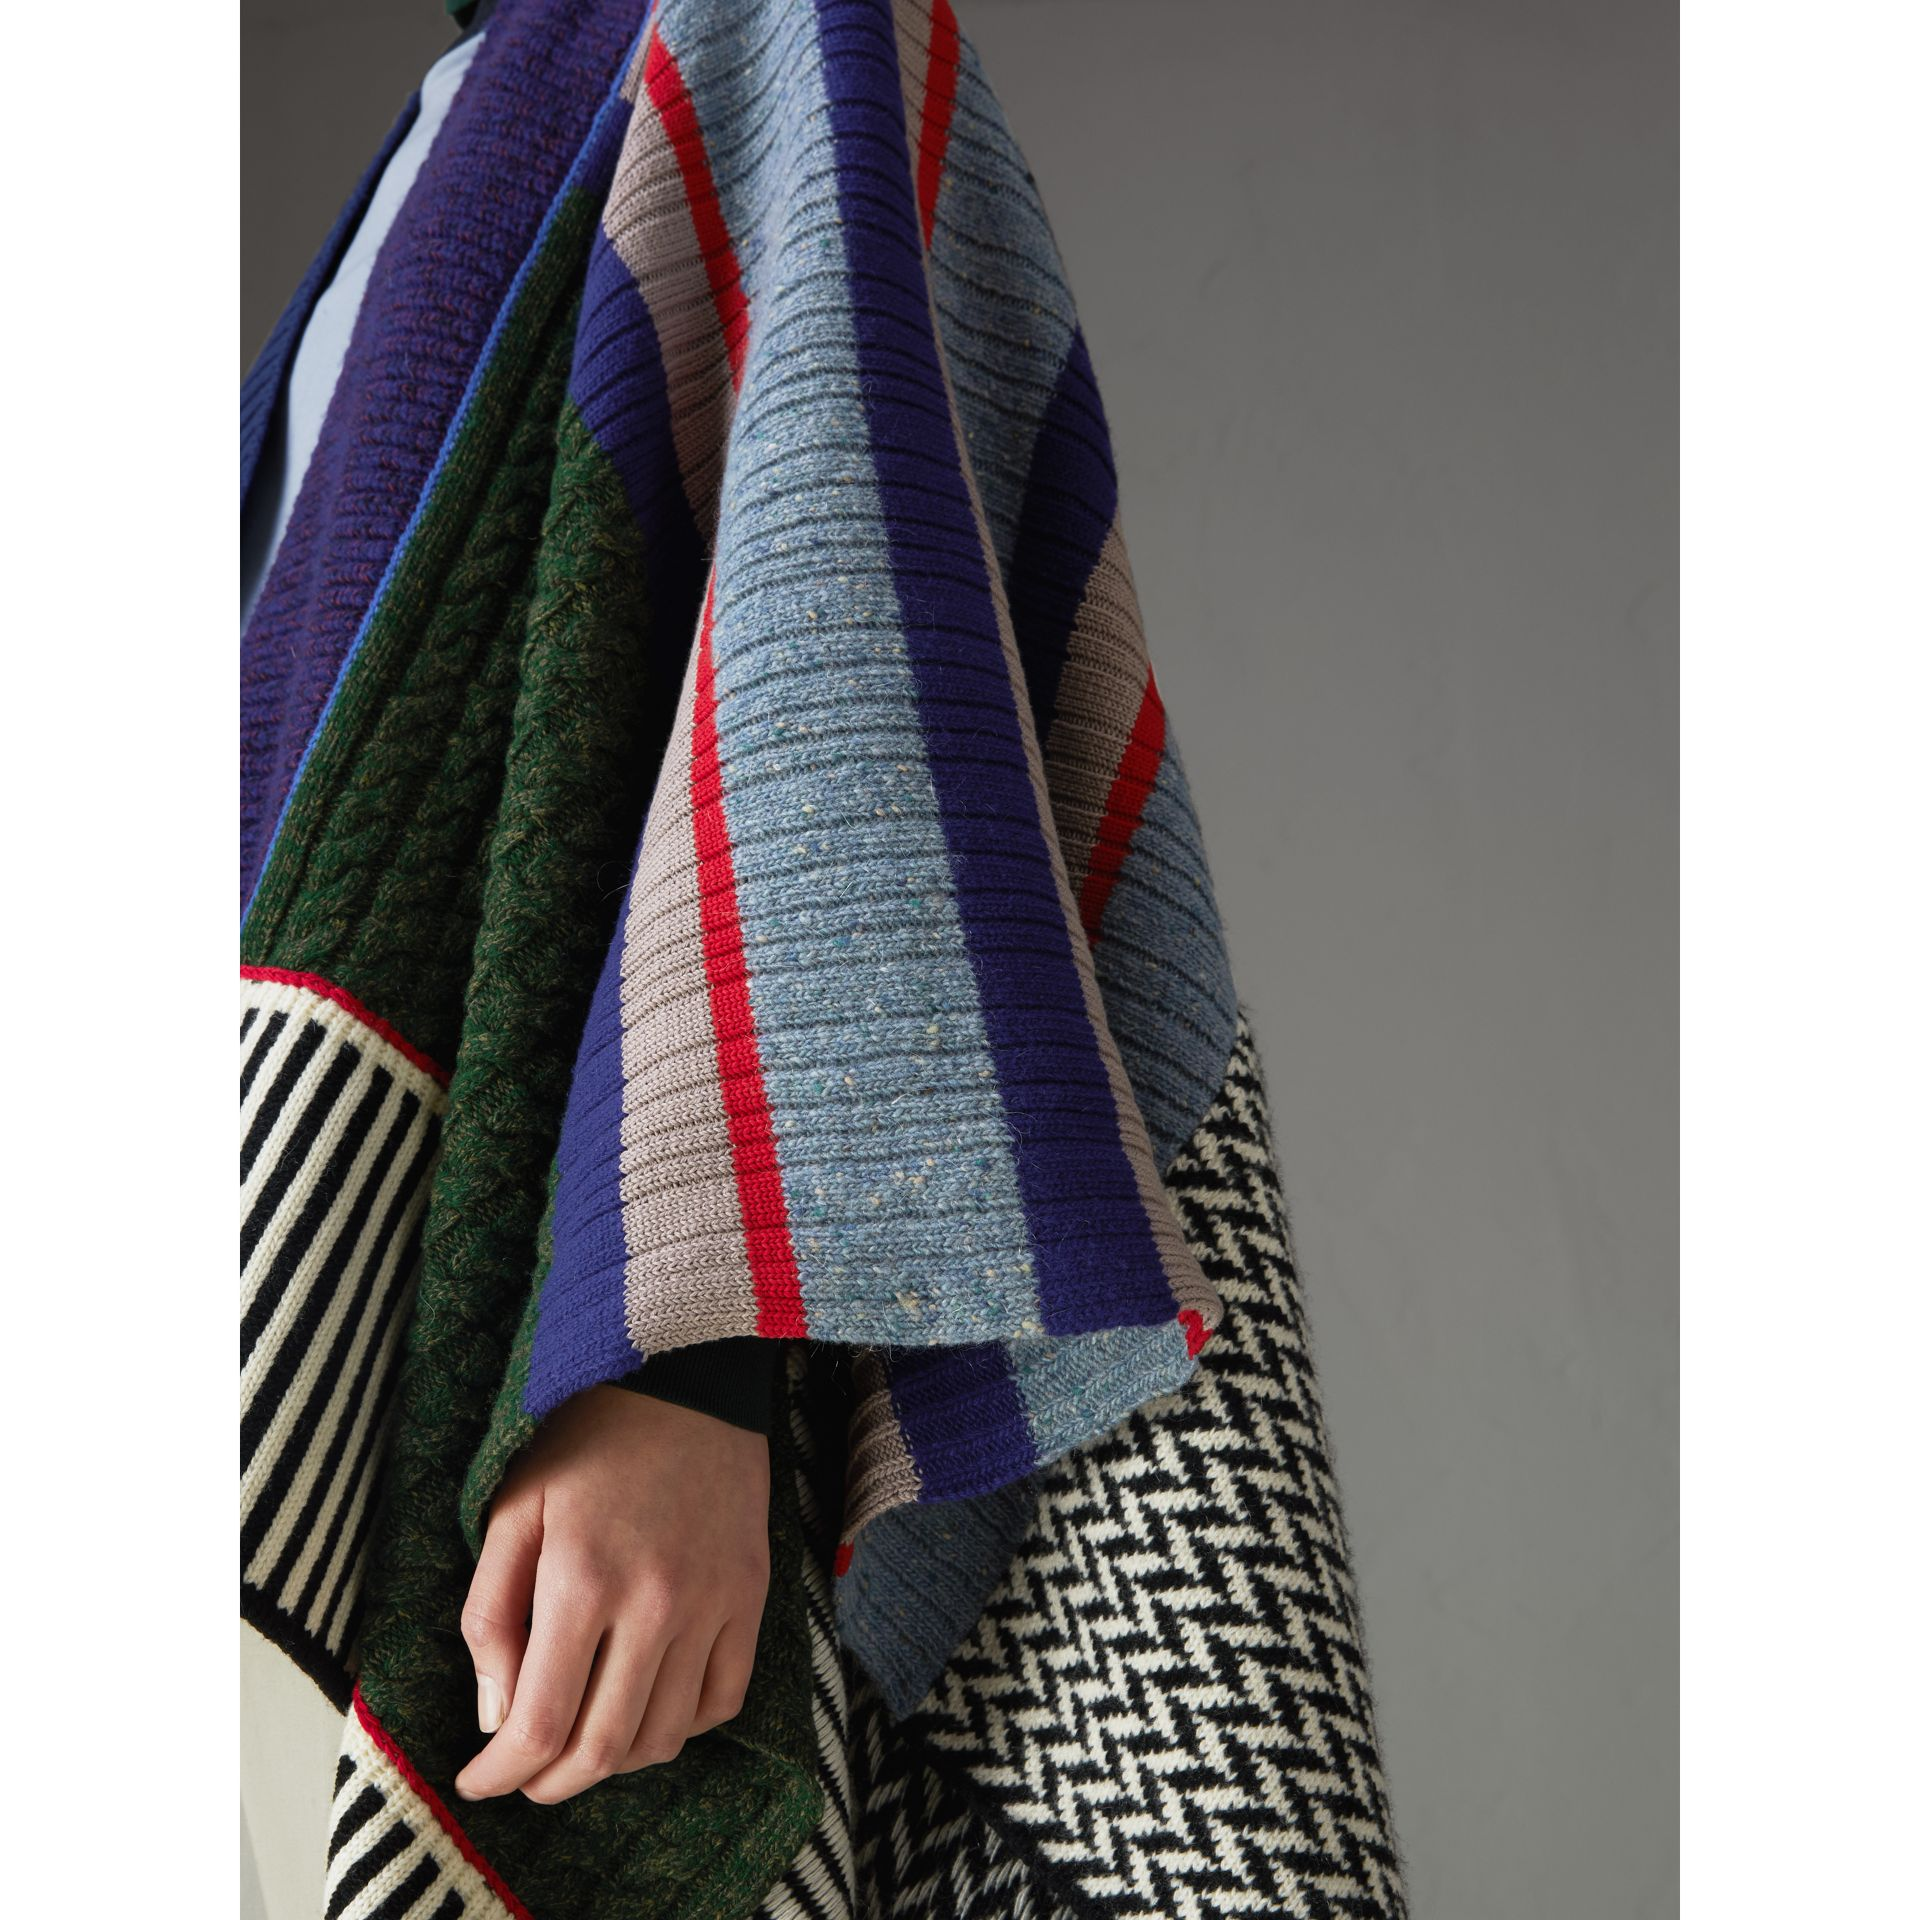 Wool Cashmere Blend Patchwork Poncho in Multicolour - Women | Burberry United Kingdom - gallery image 1